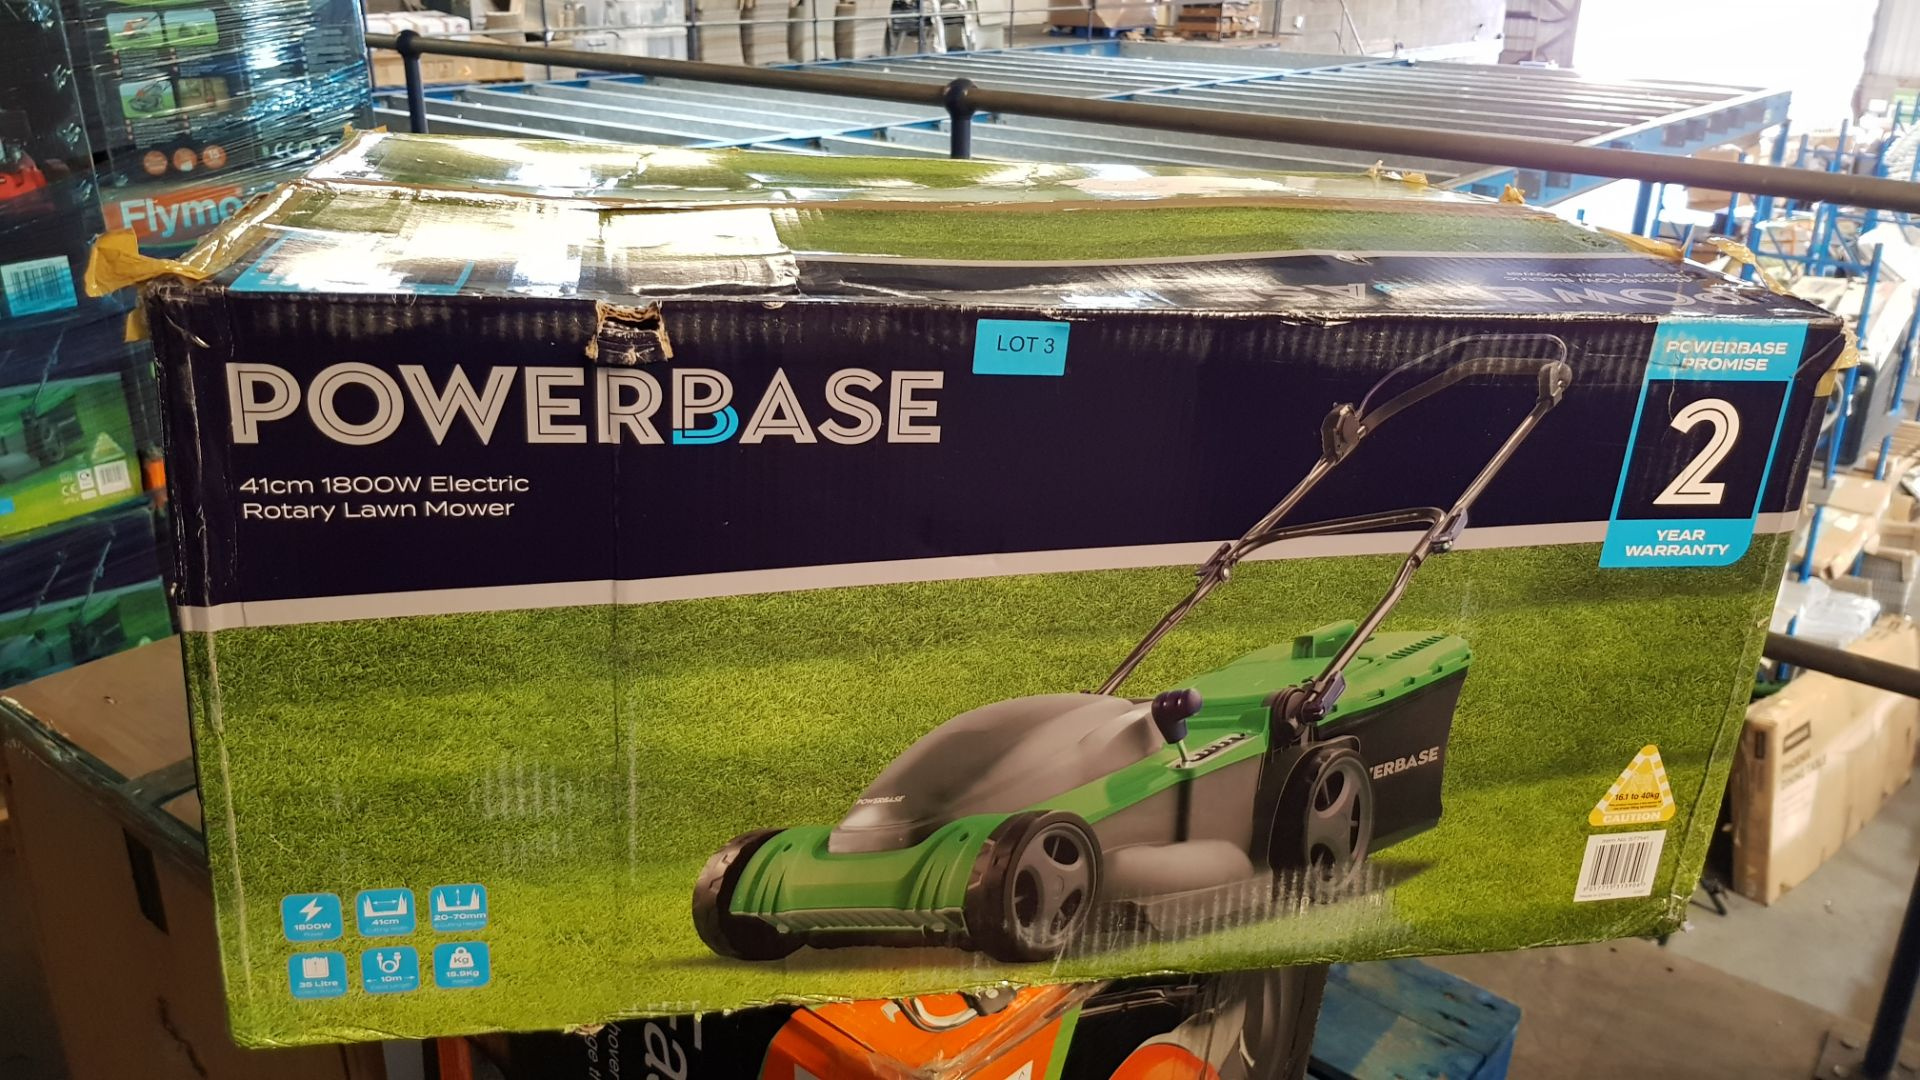 (P8) 1x Powerbase 41cm 1800W Electric Rotary Lawn Mower RRP £119. Contents Appear As New – Clean, - Image 3 of 5